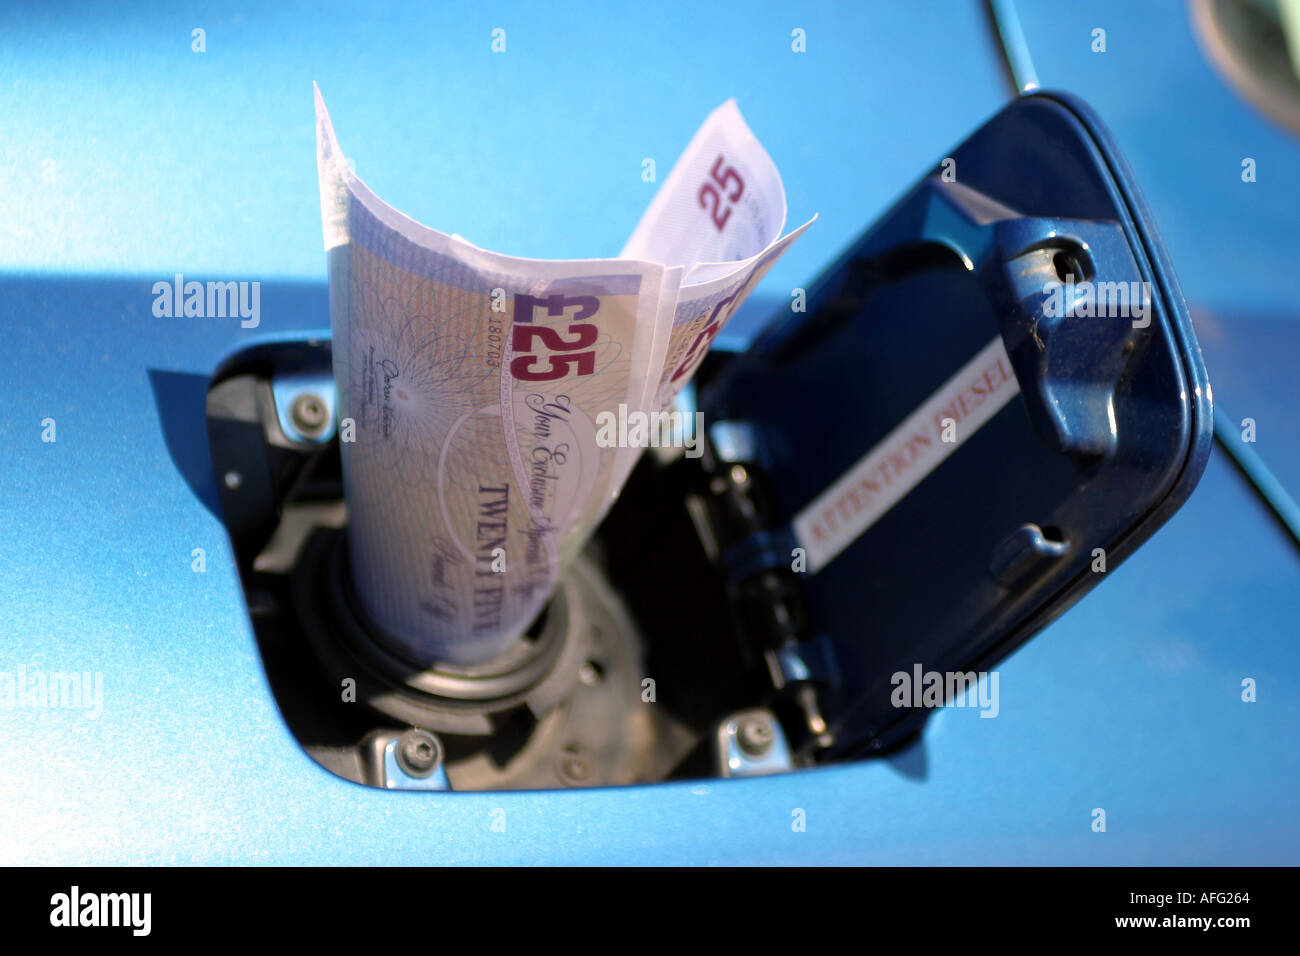 Fake Pound Notes placed in a Fuel Filler cap - Stock Image